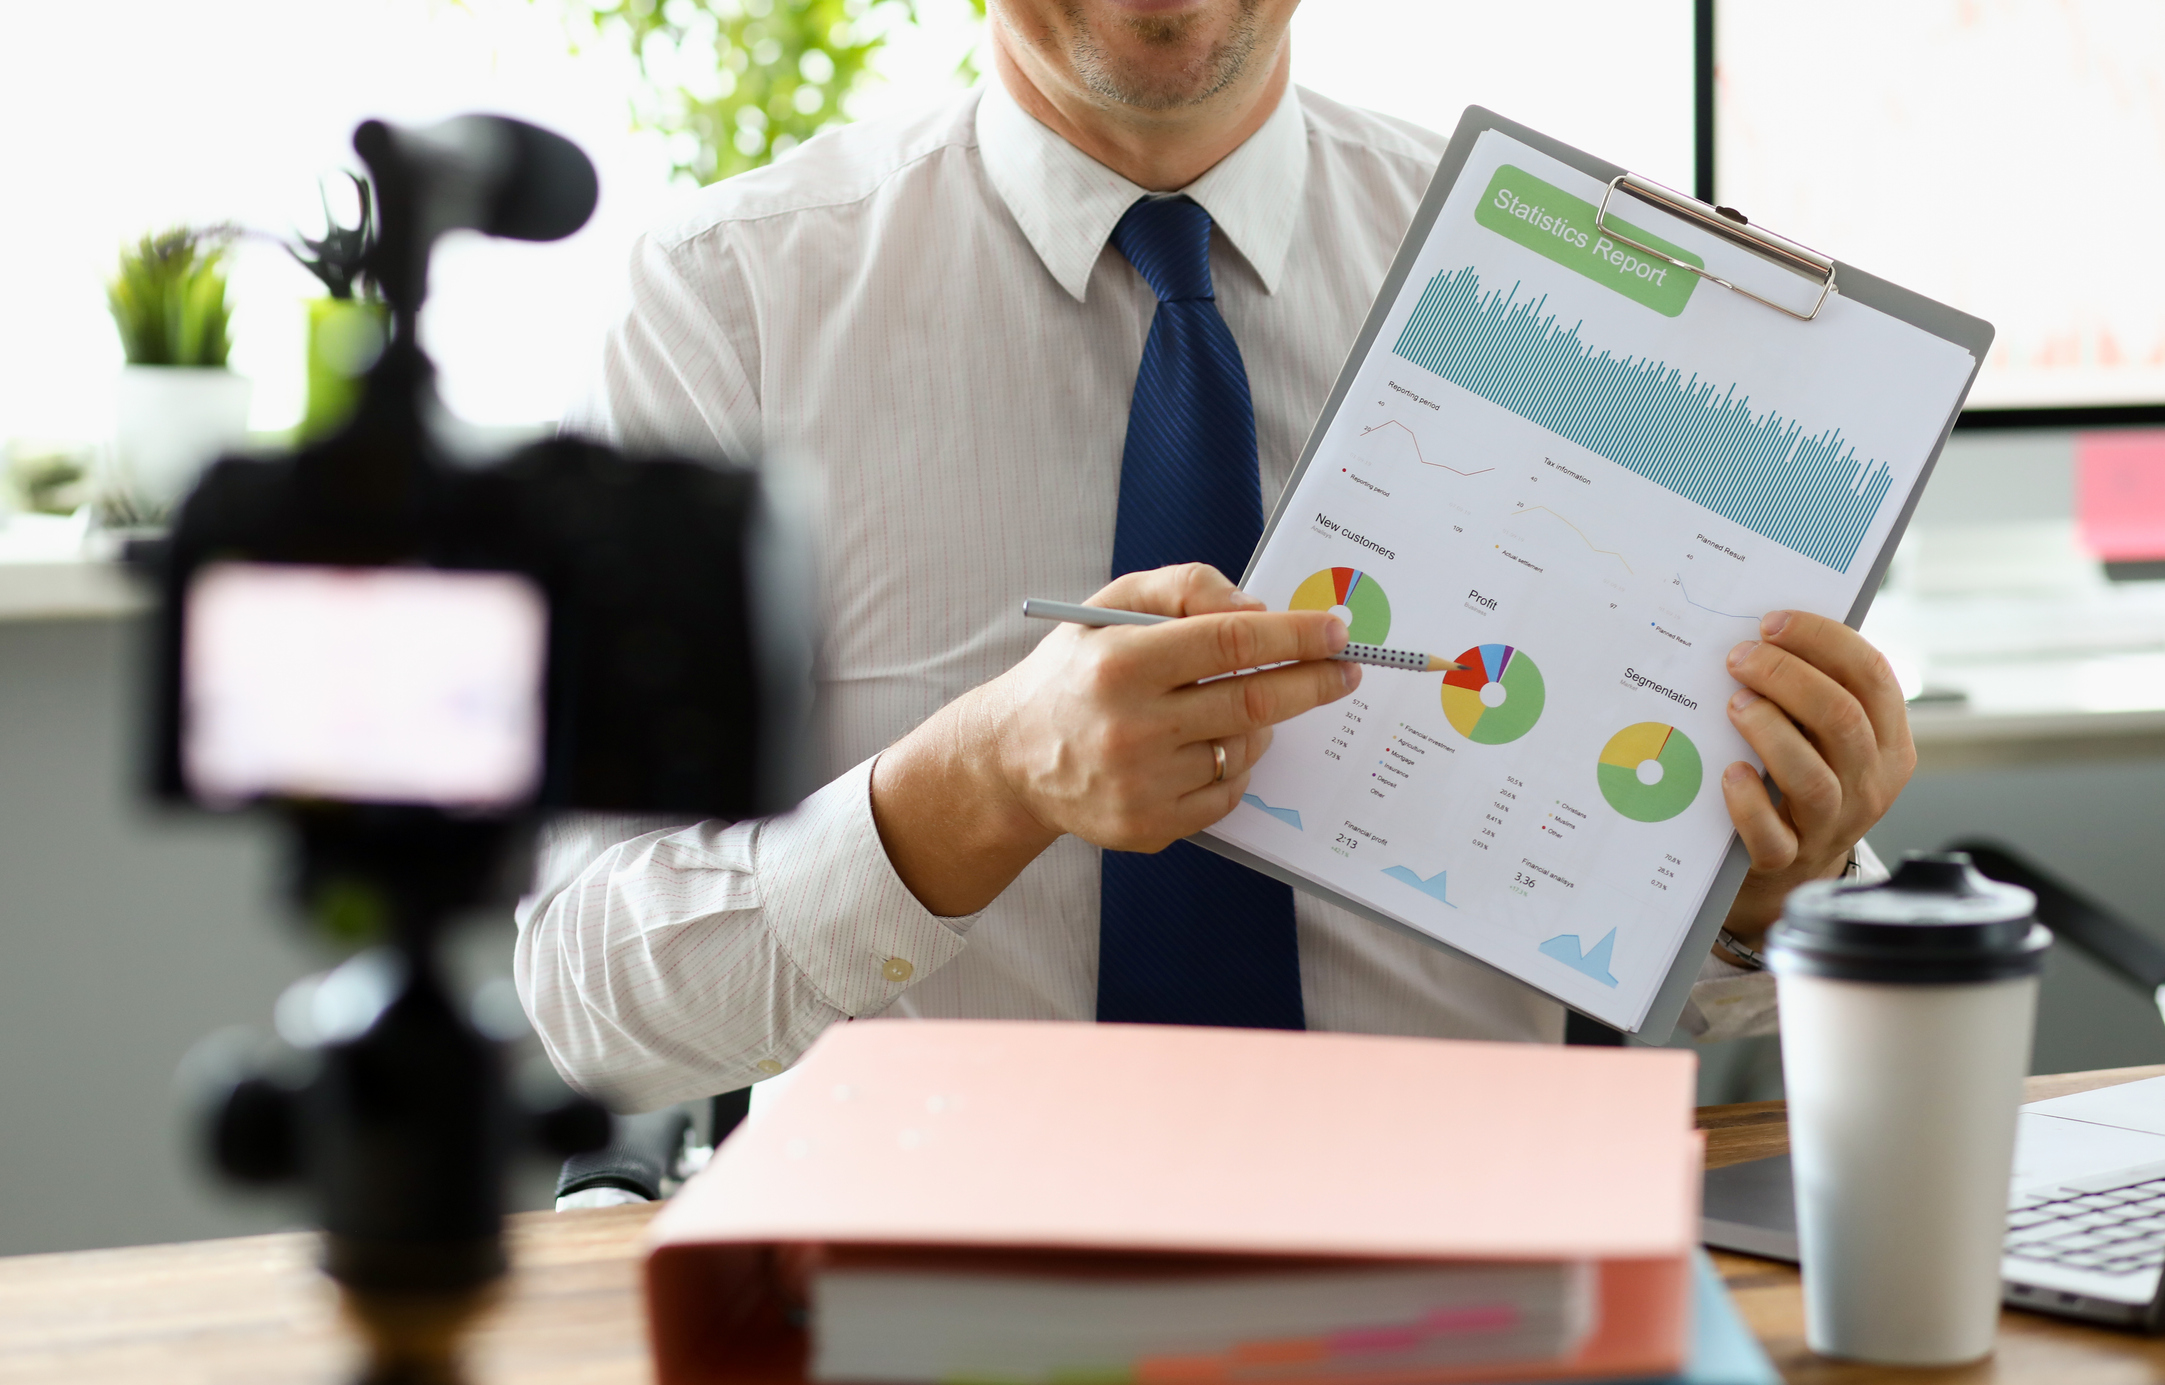 businessman-filming-b2b-fintech-video-explaining-data-on-clipboard-with-camera-in-foreground